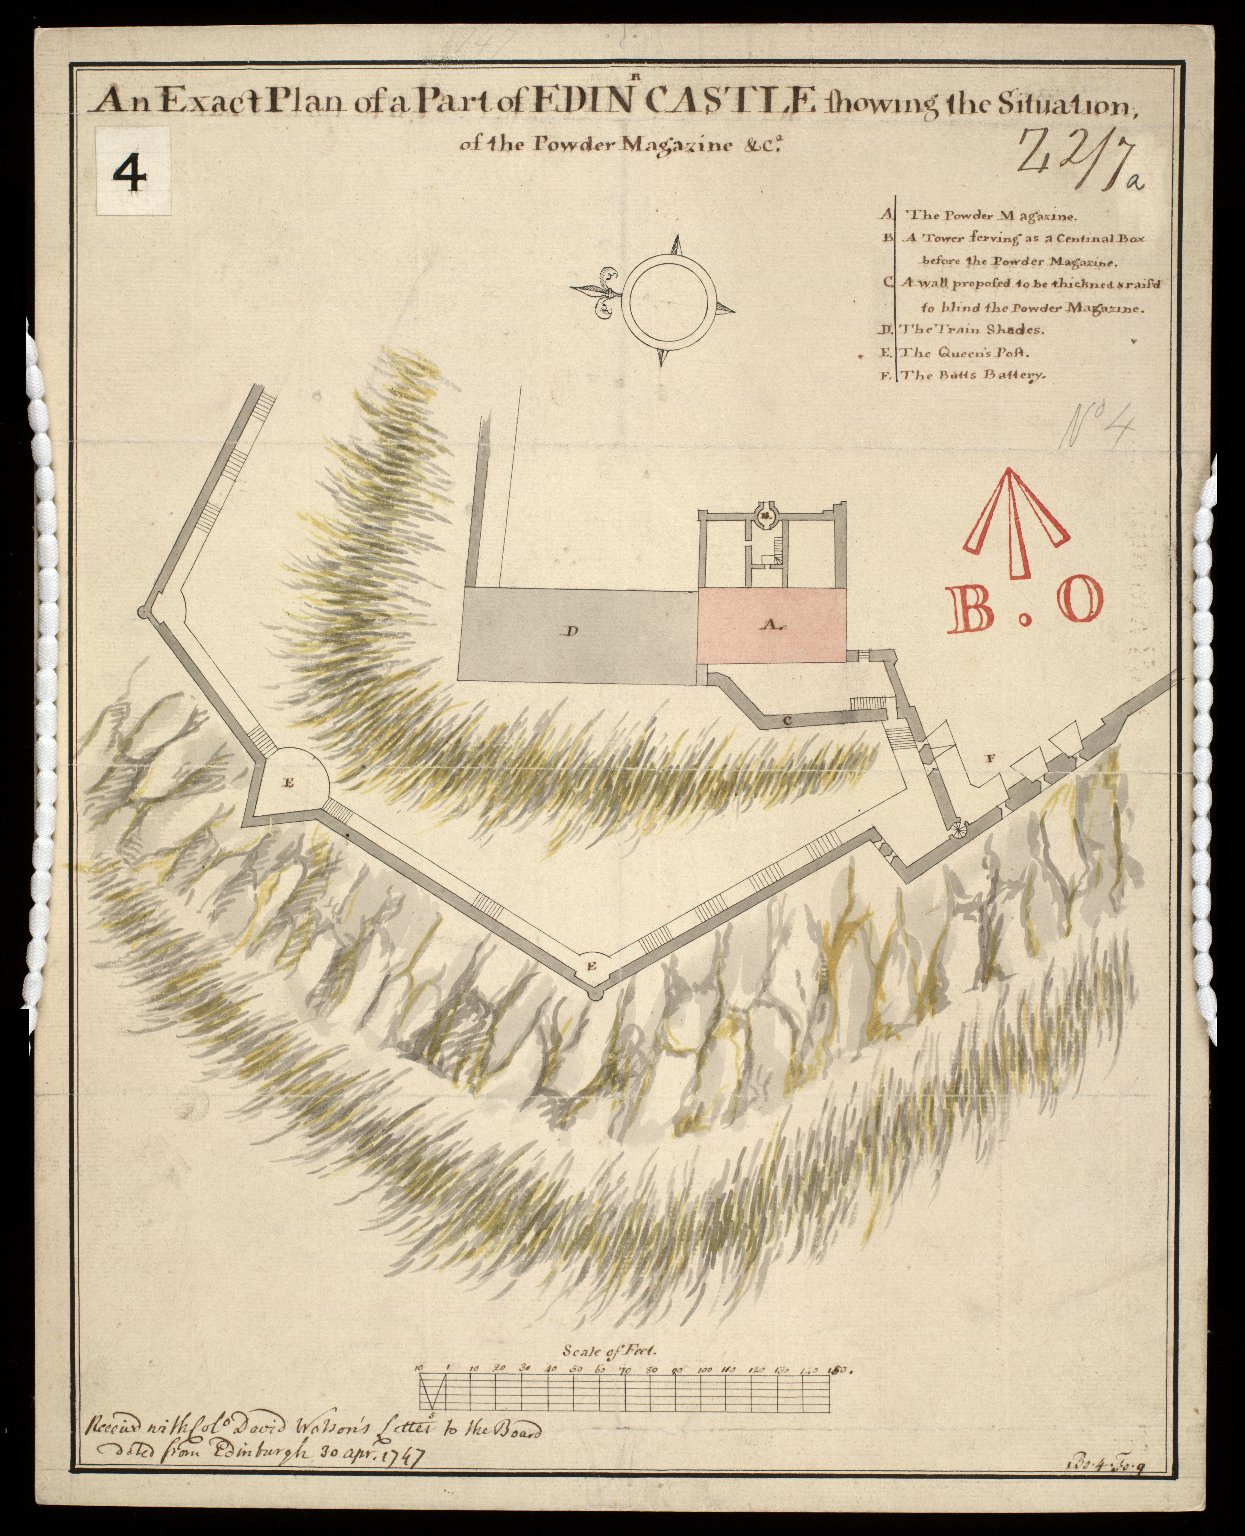 An Exact plan of a part of Edinbr Castle showing the situation of the powder magazine, etc. [1 of 1]